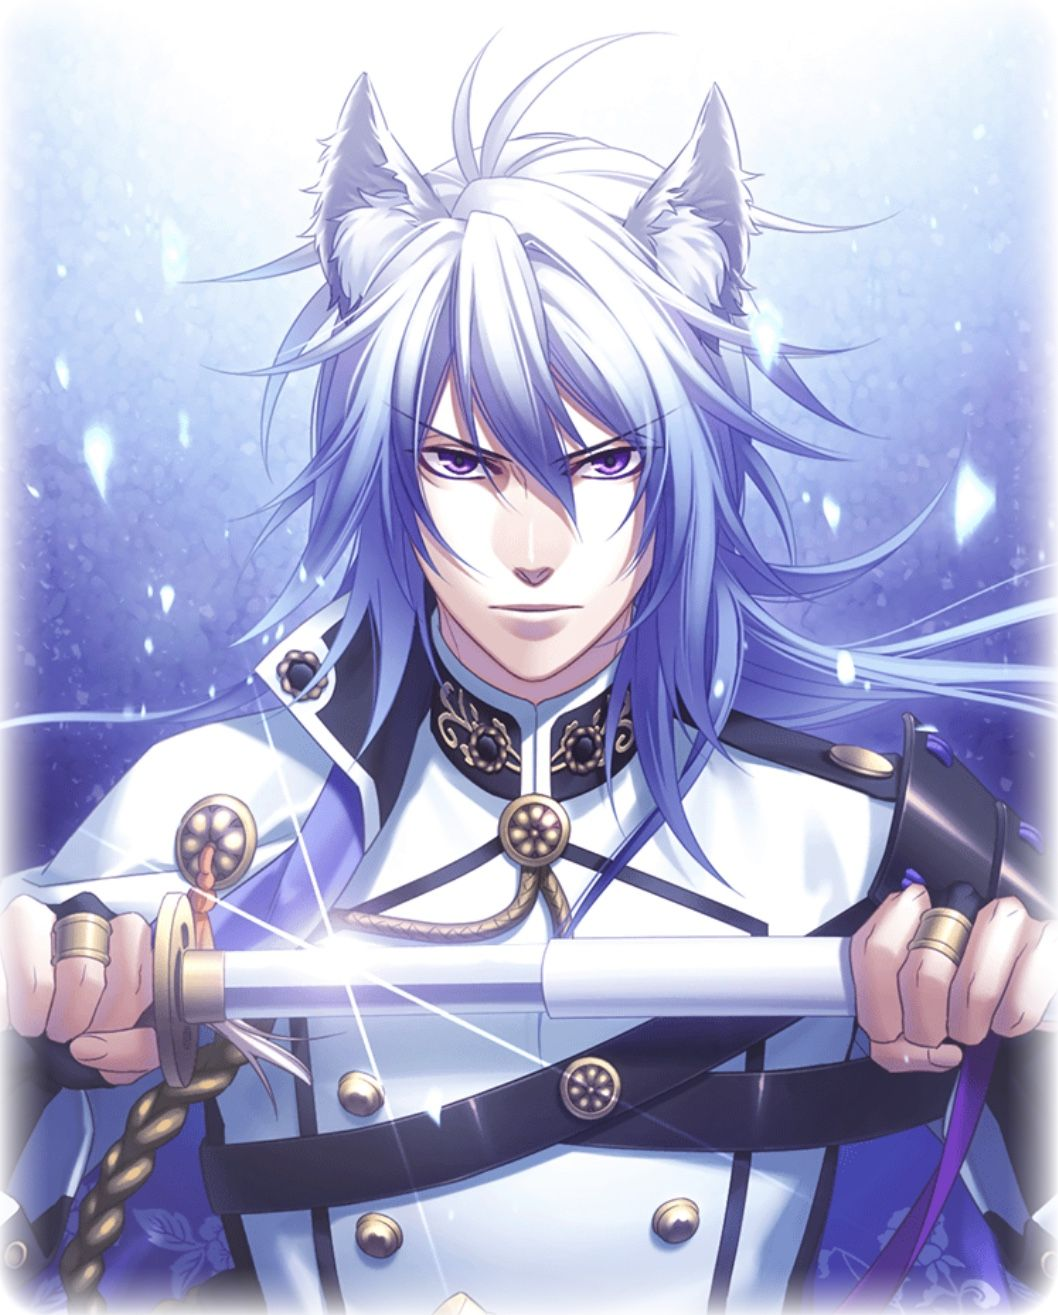 Pin By Michele Herd On Kitsune Werewolves Cool Anime Guys Anime Guys Anime Boy